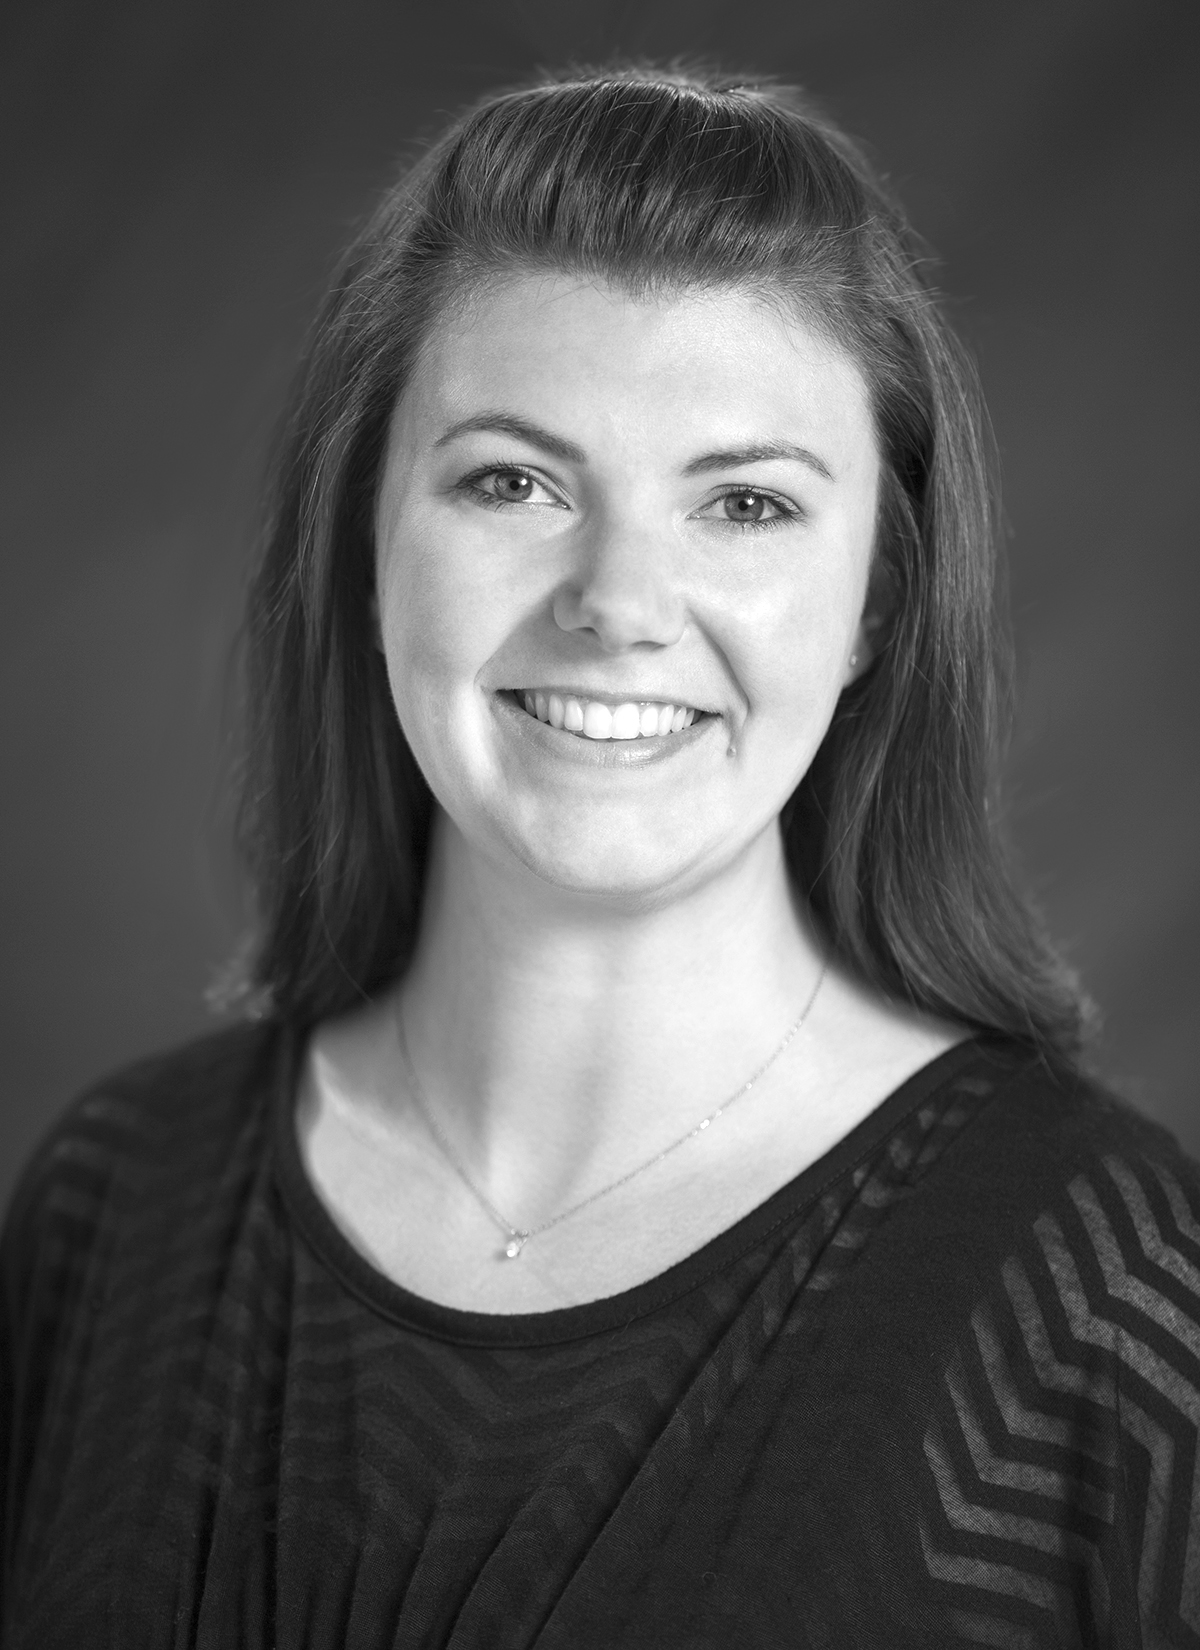 Jessi Wallington / Office Manager, Social Media Specialists